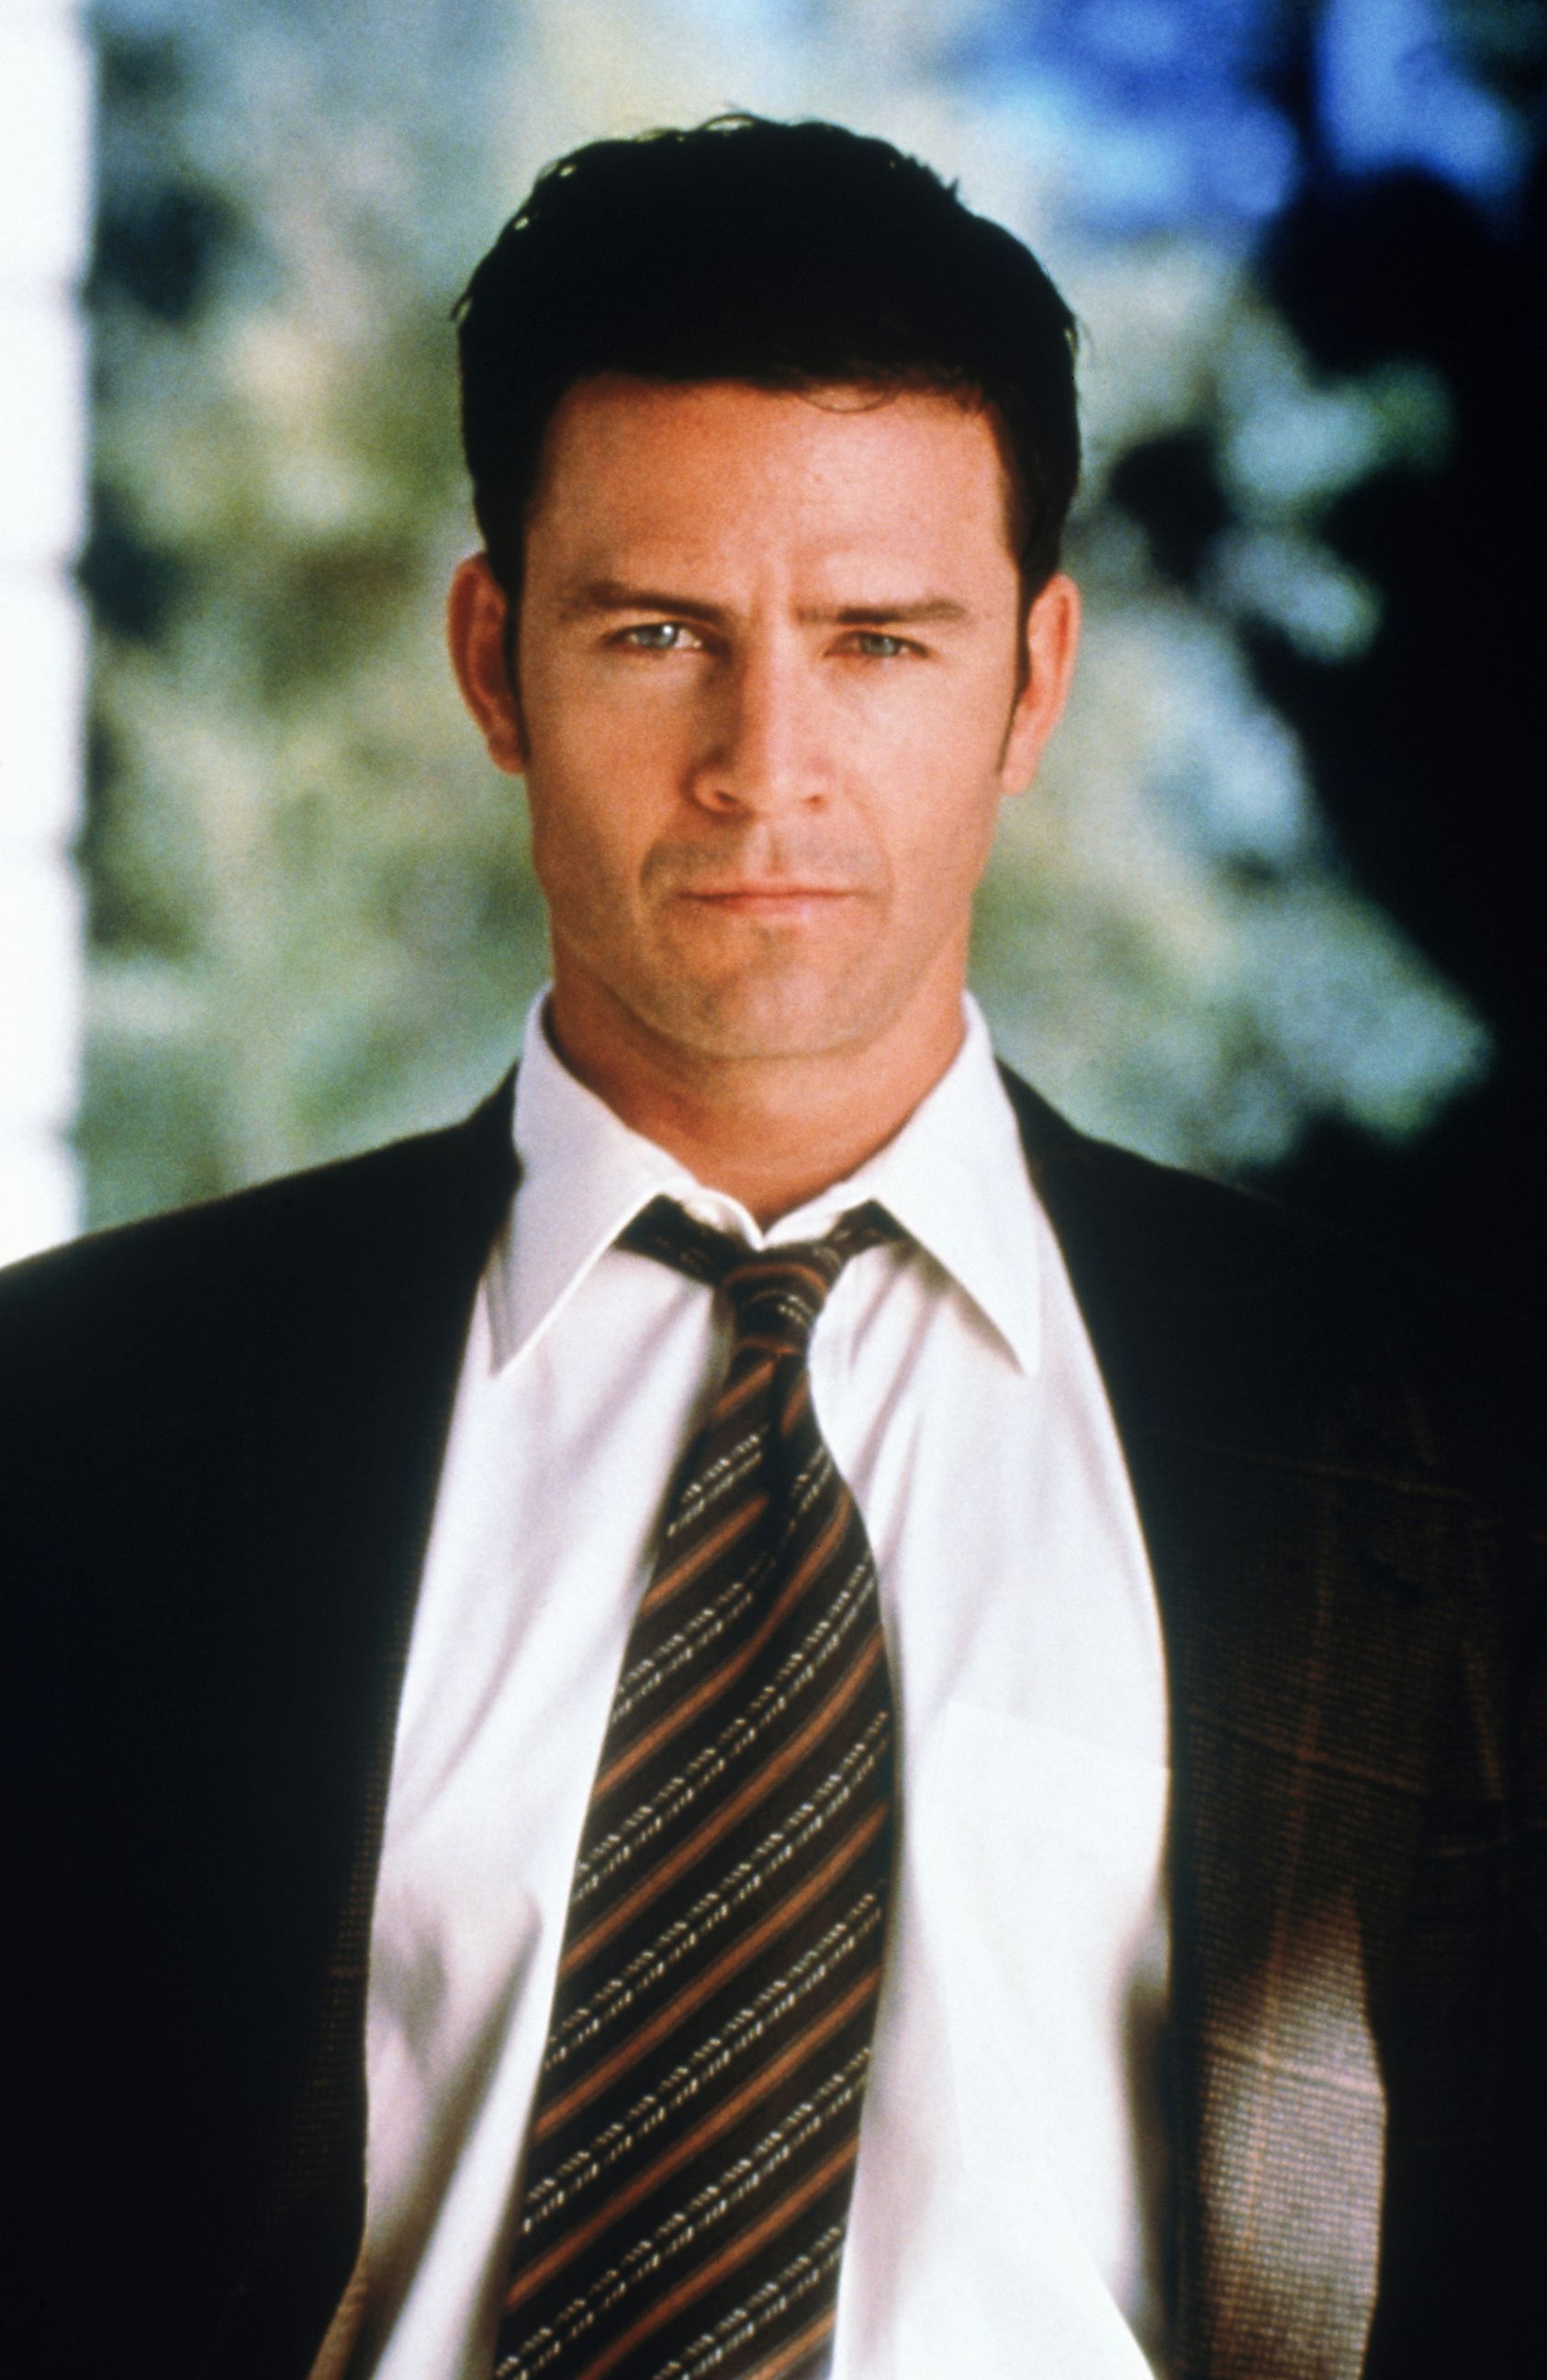 Charmed Brian Krause Julian Mcmahon Other Guys Dvdbash